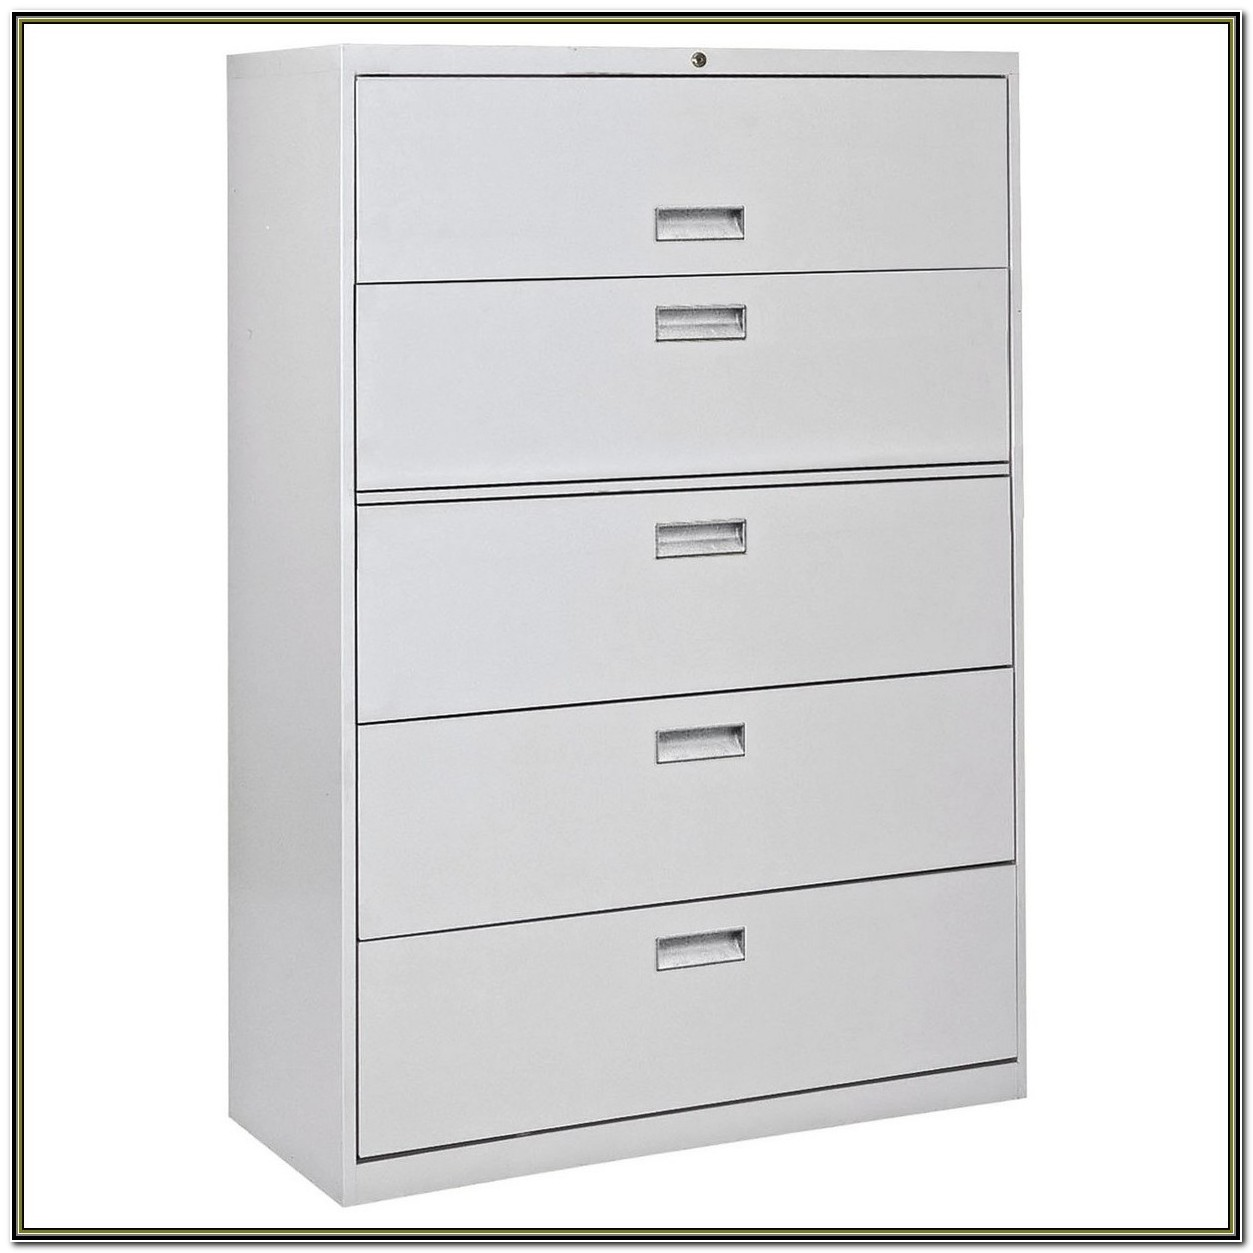 Hon 4 Drawer File Cabinet Weight